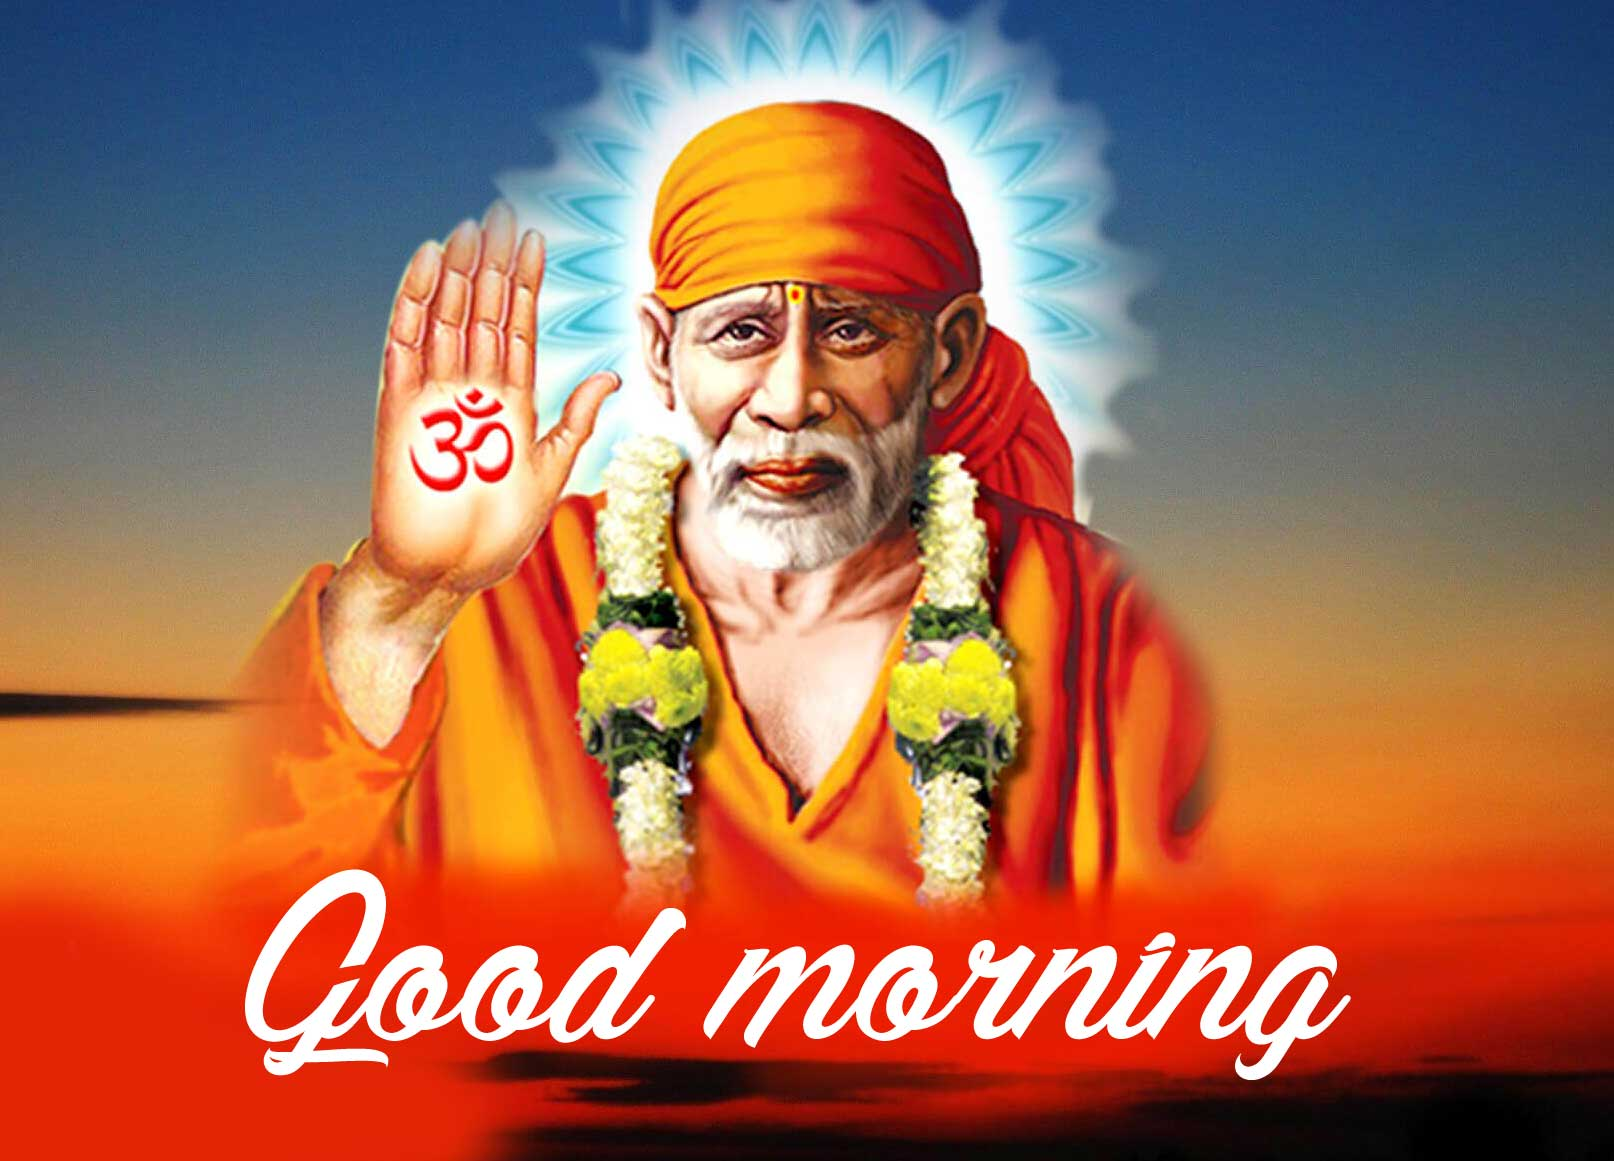 Sai Baba Good Morning Images for Best Friend